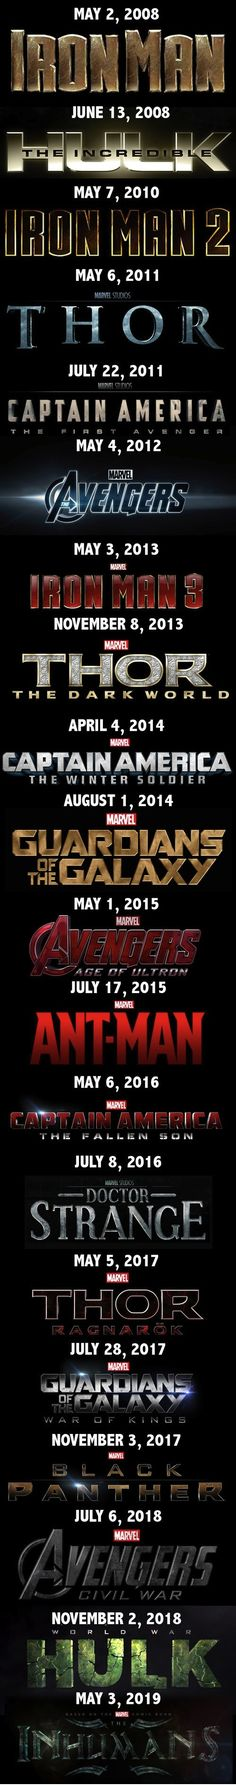 The Marvel Cinematic Universe. SO EXCITED!!!!! <<<<<< OMG OMG OMG OMG OMG OMG OMG OMG OMG!!!!!!!!!!!!! ------ASHLDJKSADHJGKLFG I......I don't.......uhhhh.......this......is...... ge-ge-geek overlo-o-o-oad...... holy....ASKLFH......crap.......I need a paper bag, I think I'm hyperventilating.......